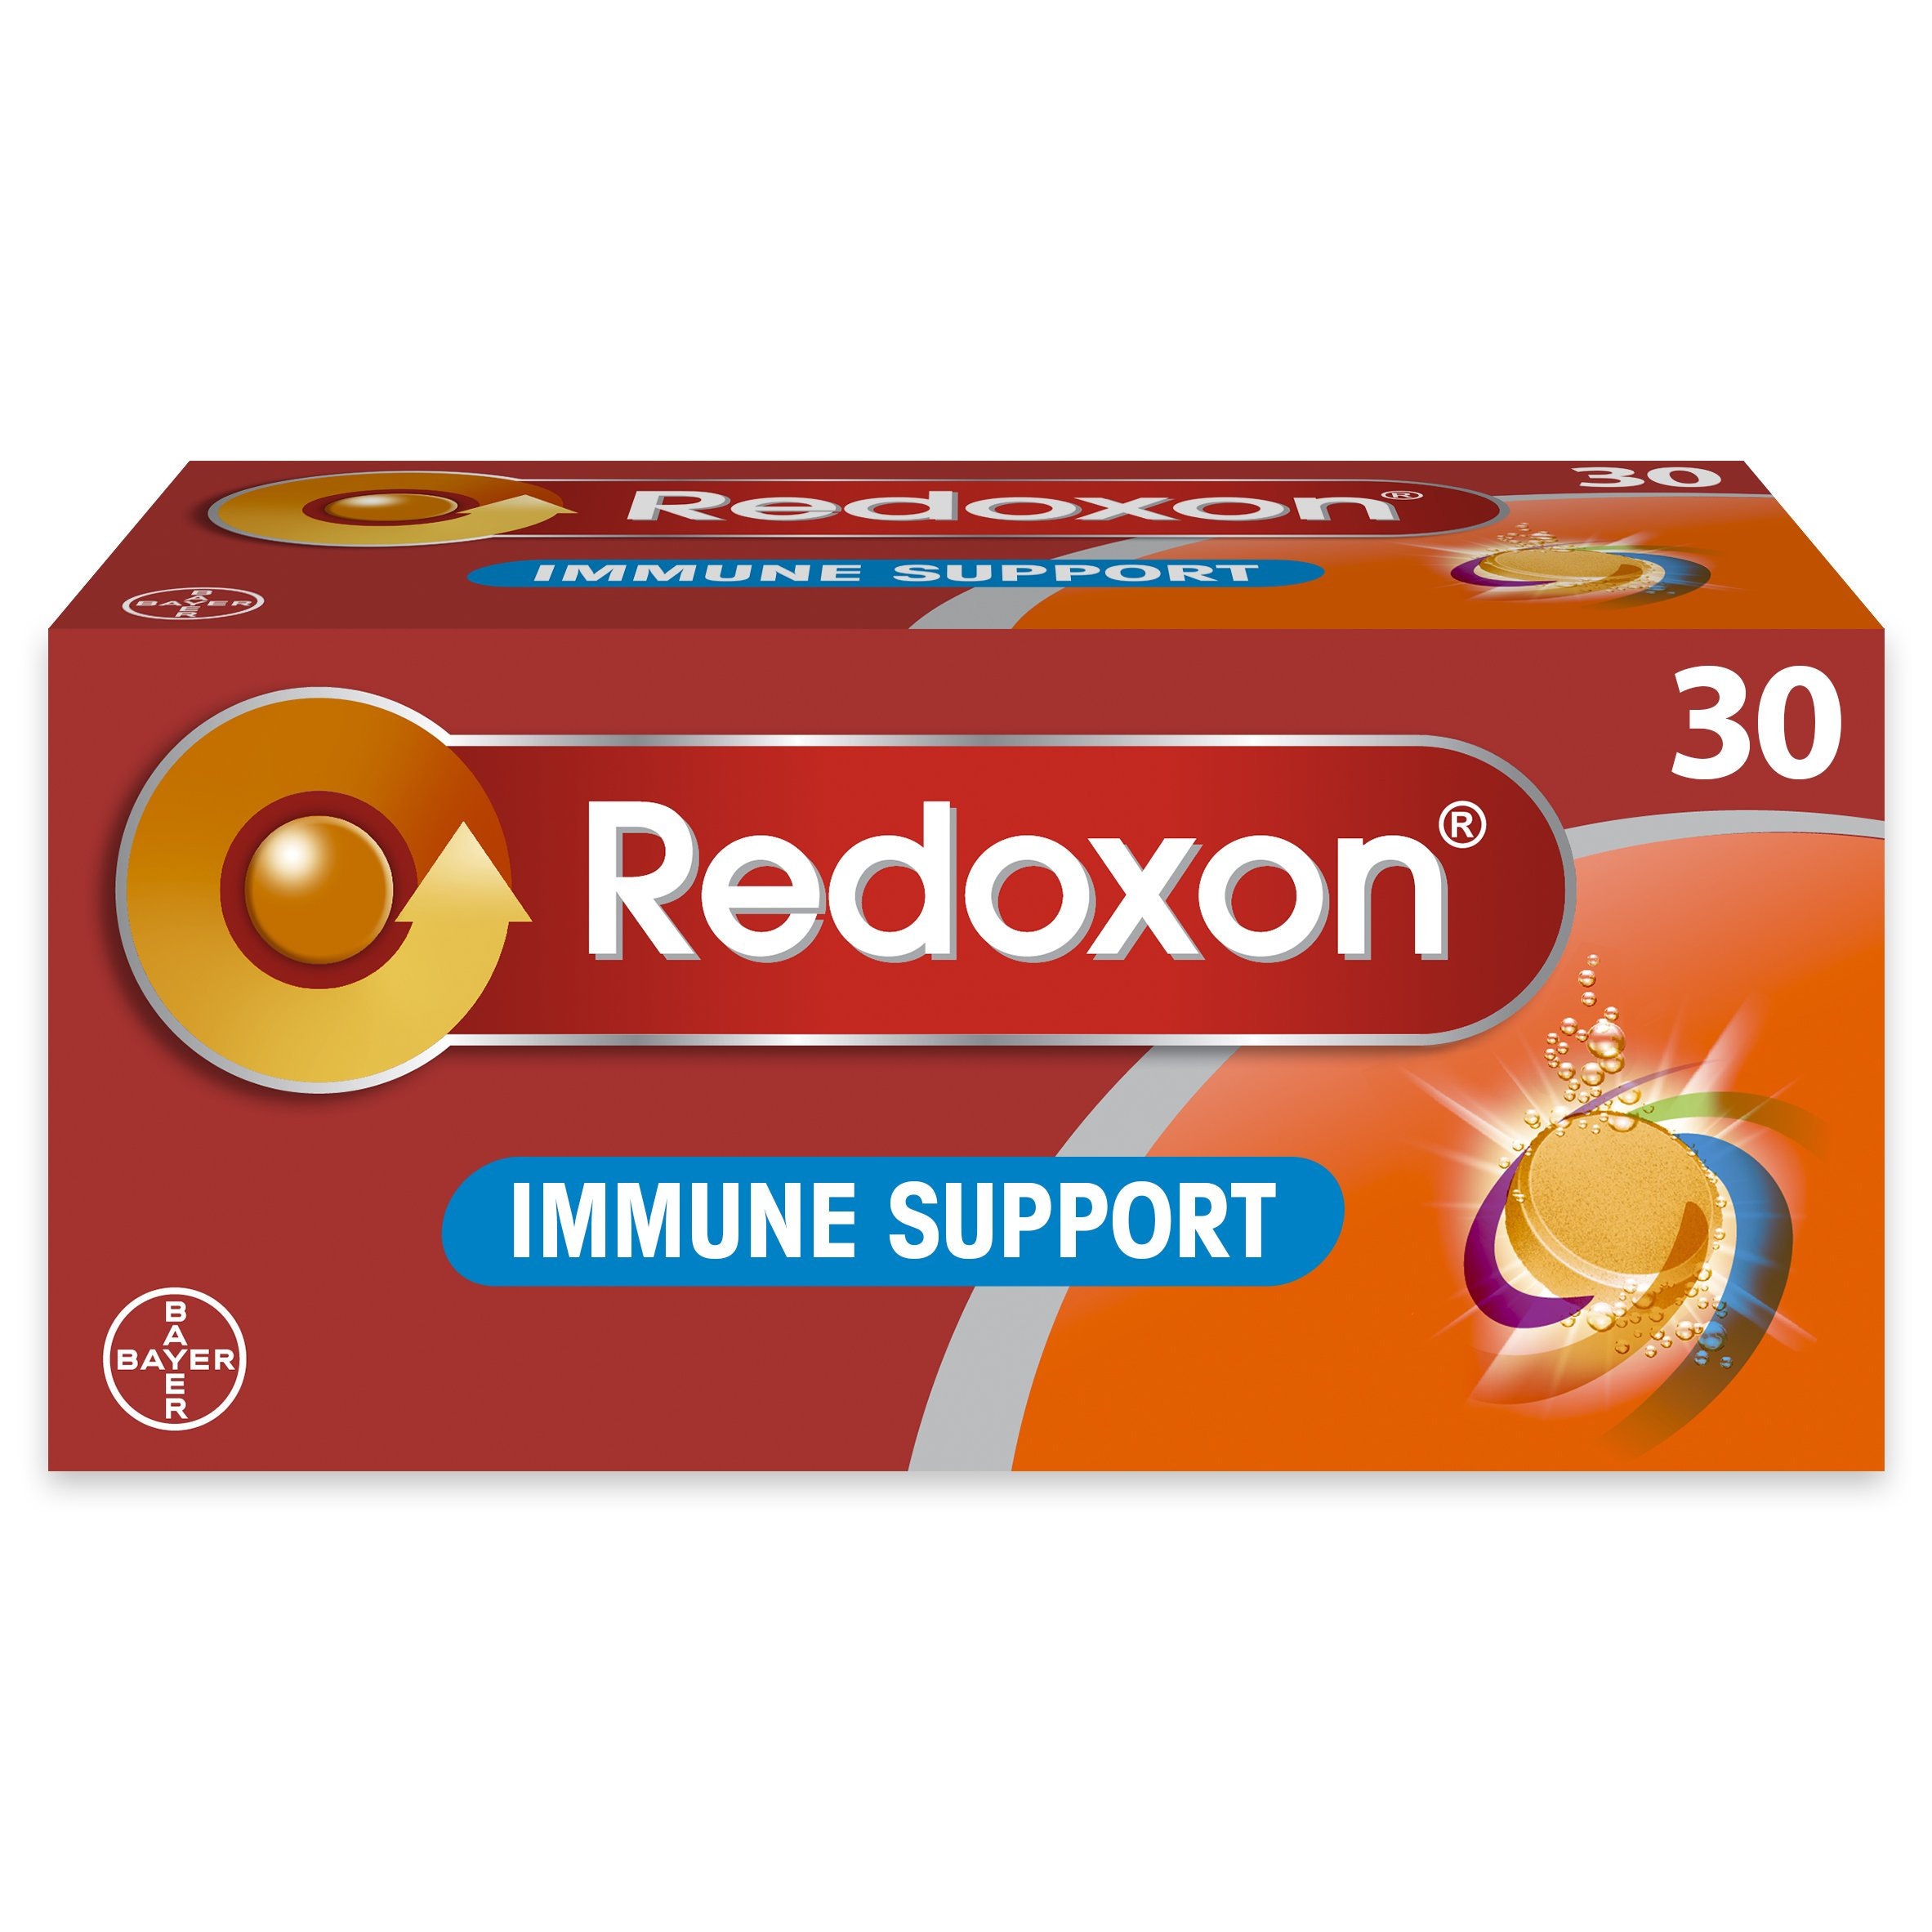 Redoxon Immune Support Effervescent Pack Of 30 Tablets